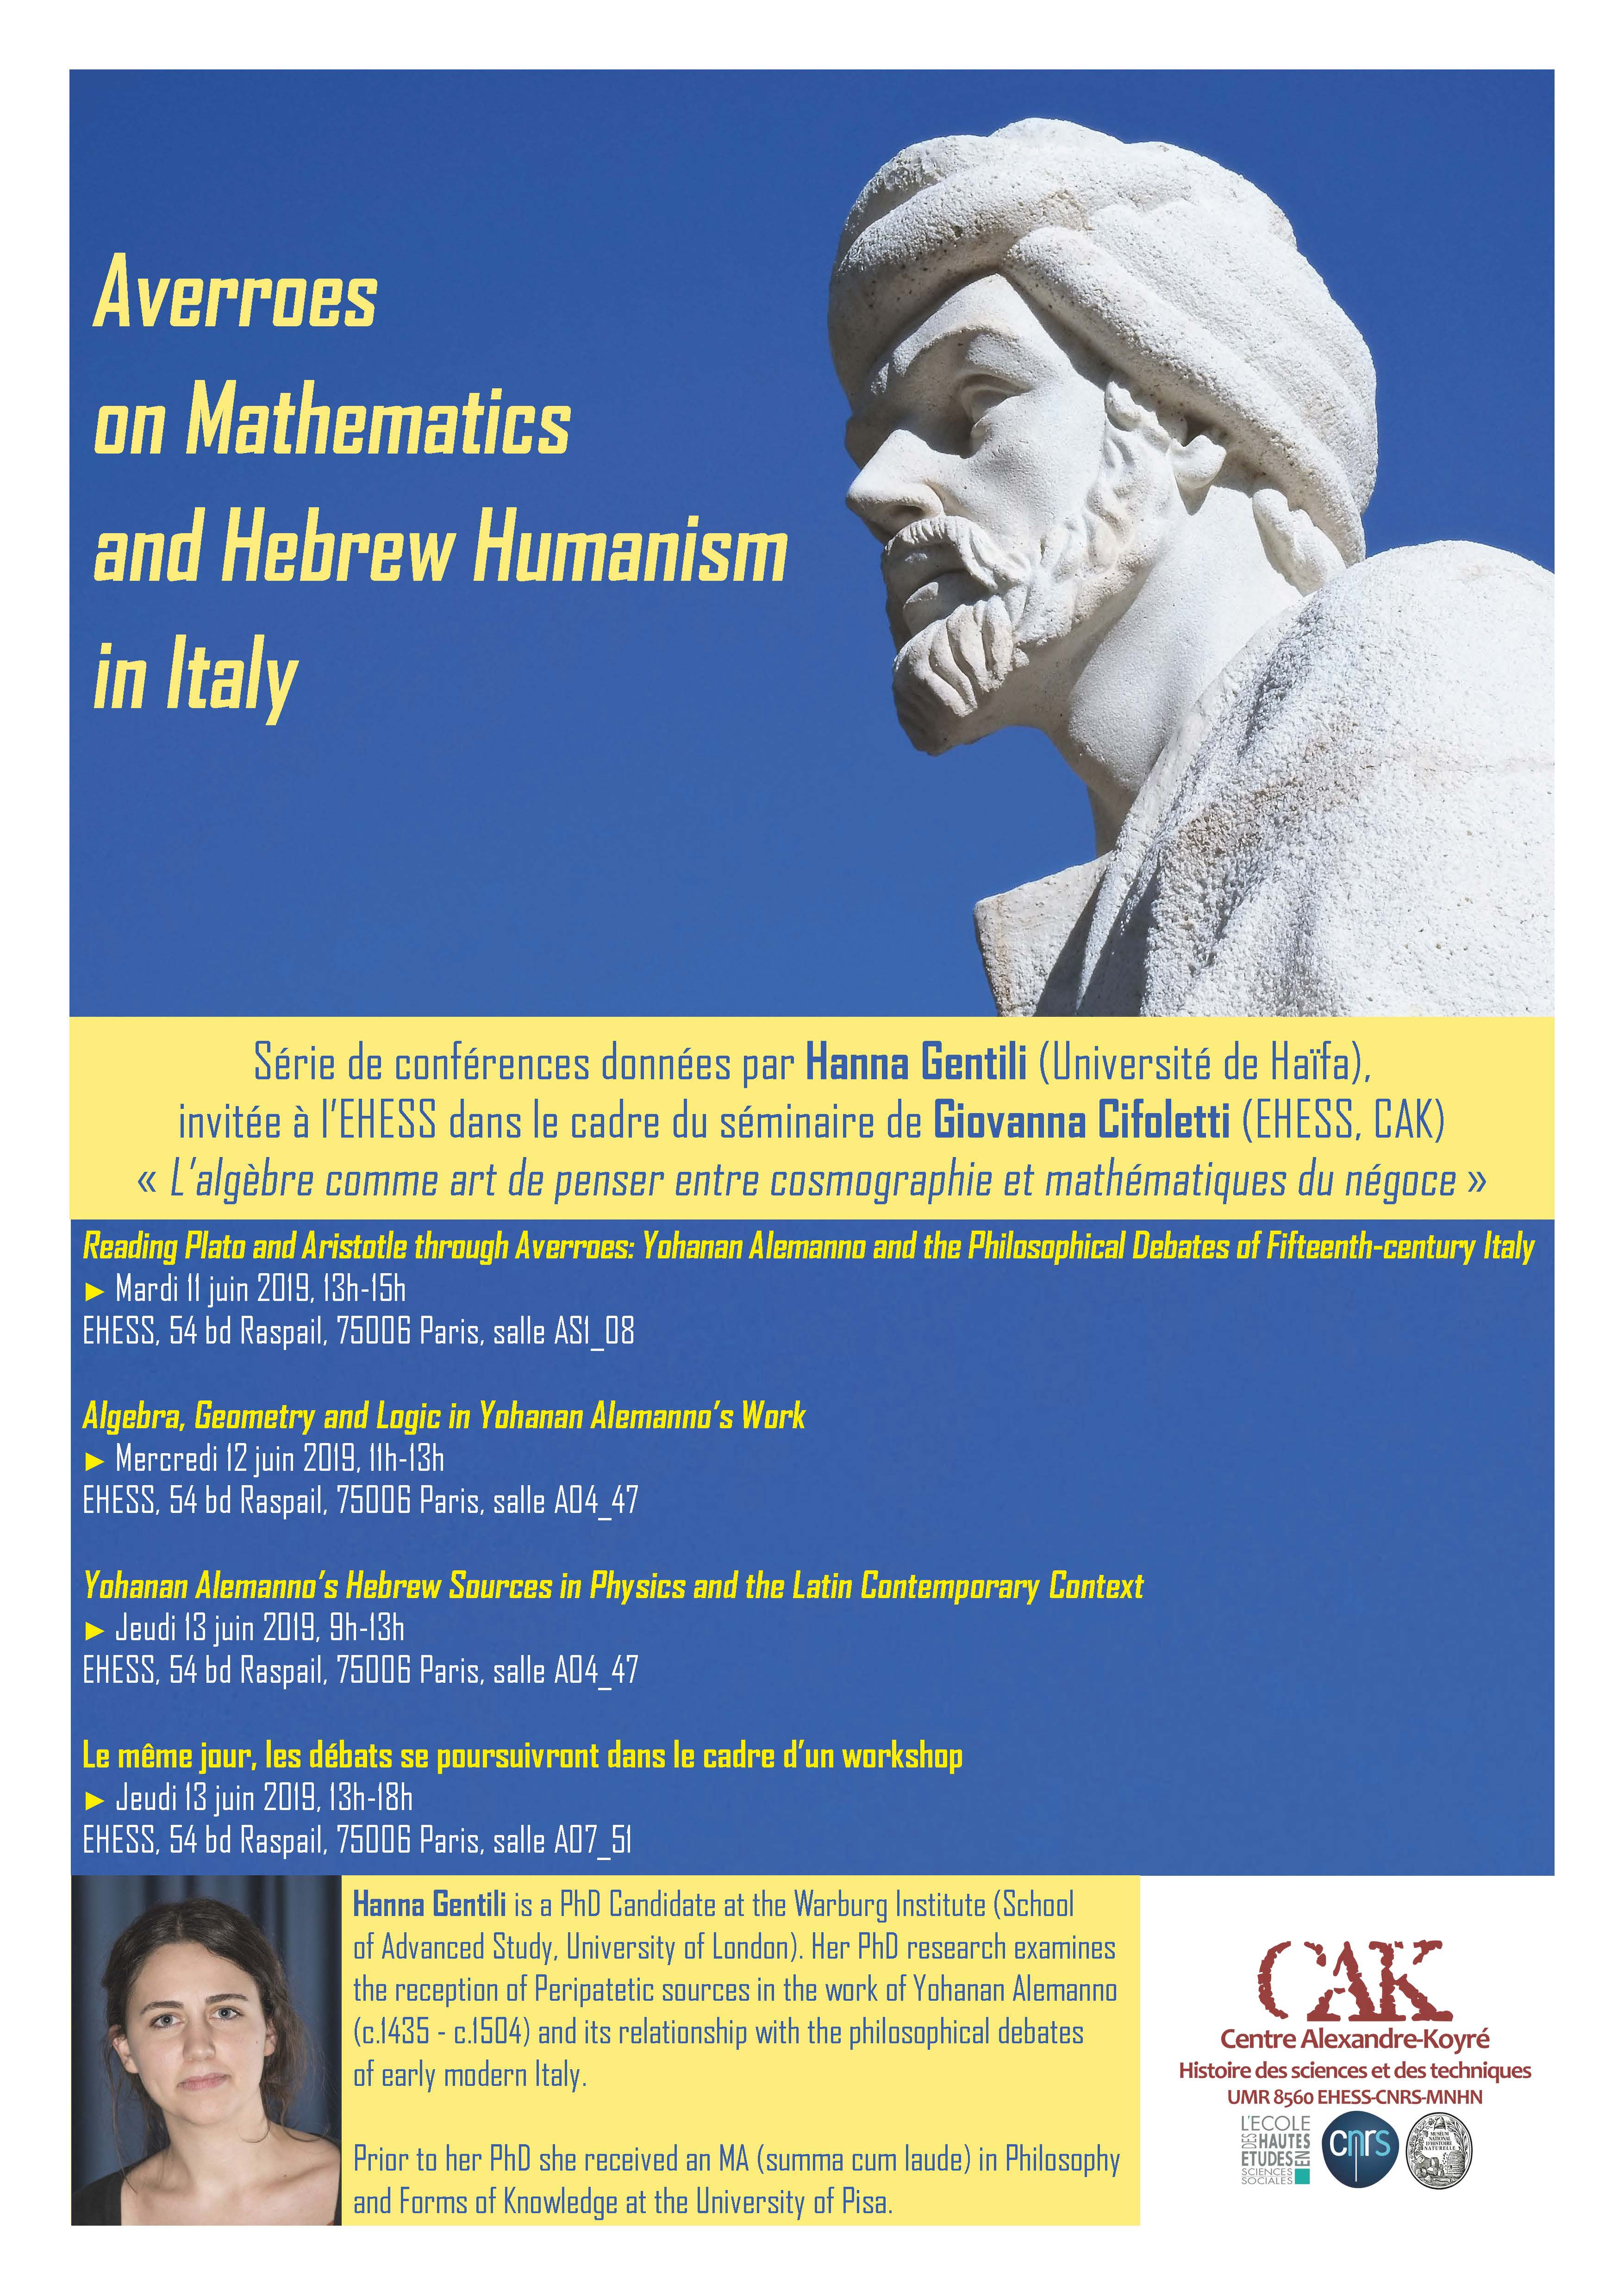 Conférences - Hanna Gentili (Université de Haïfa) : Averroes on Mathematics and Hebrew Humanism in Italy